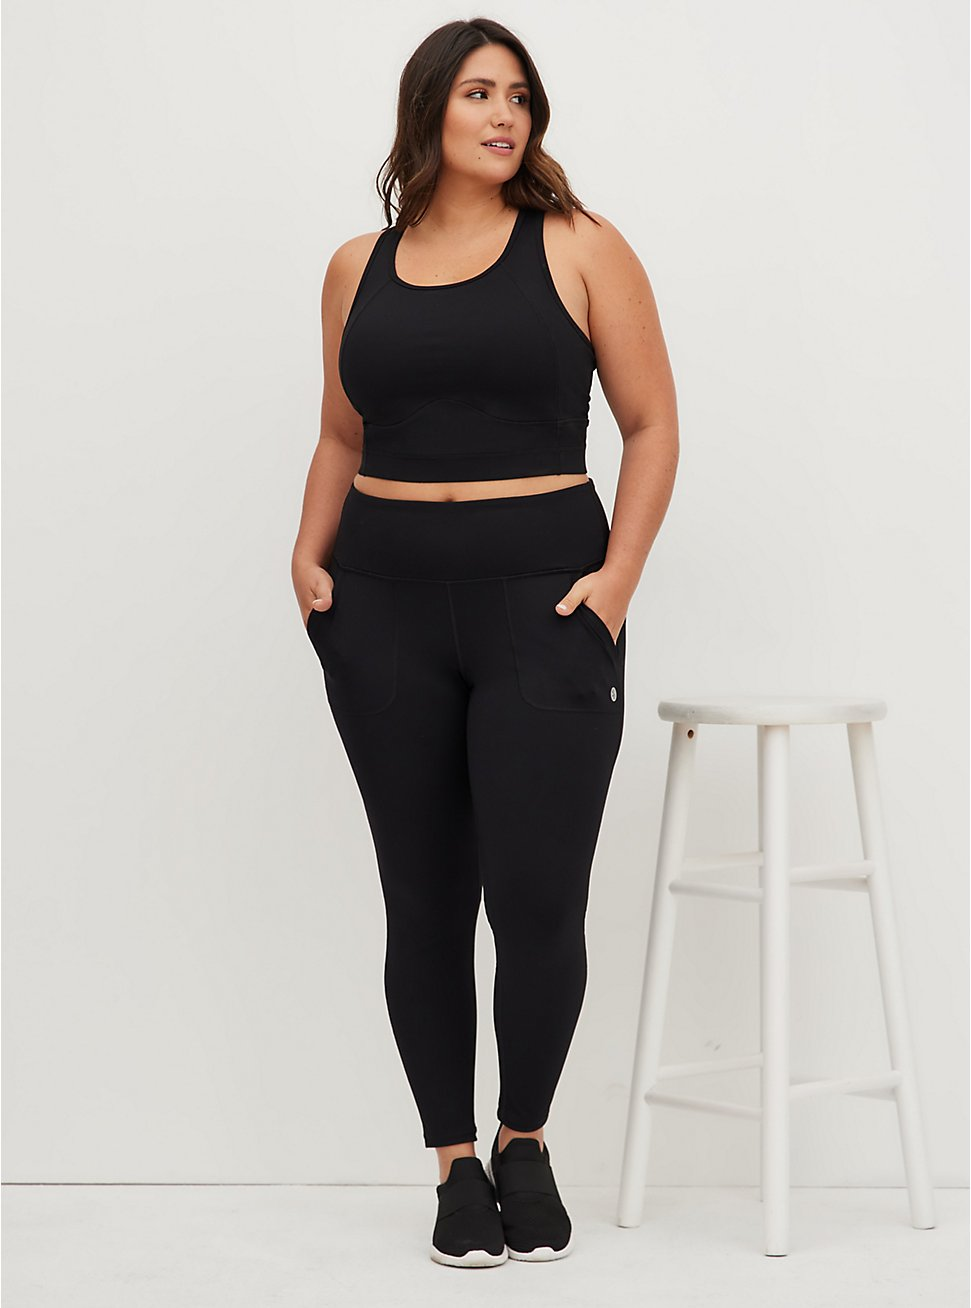 Black Full Length Wicking Active Legging with Trouser Pockets, DEEP BLACK, hi-res